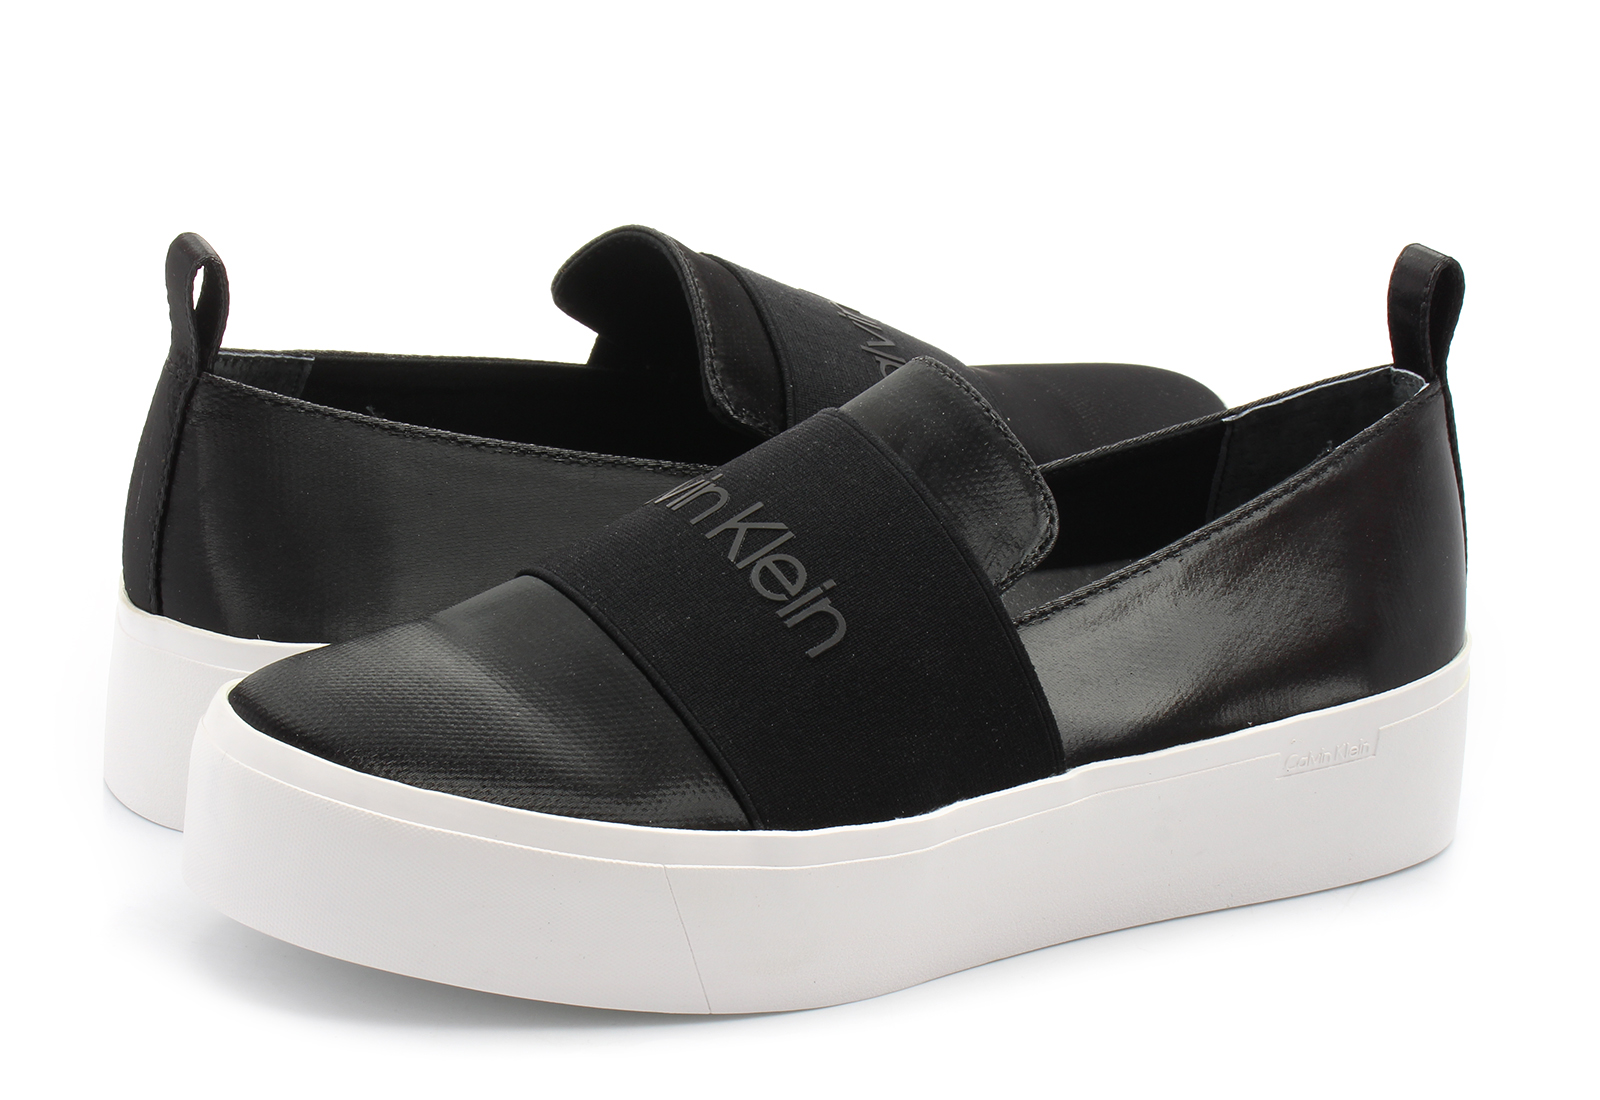 calvin klein black label slip on cipele crne cipele jacinta office shoes online trgovina obu e. Black Bedroom Furniture Sets. Home Design Ideas